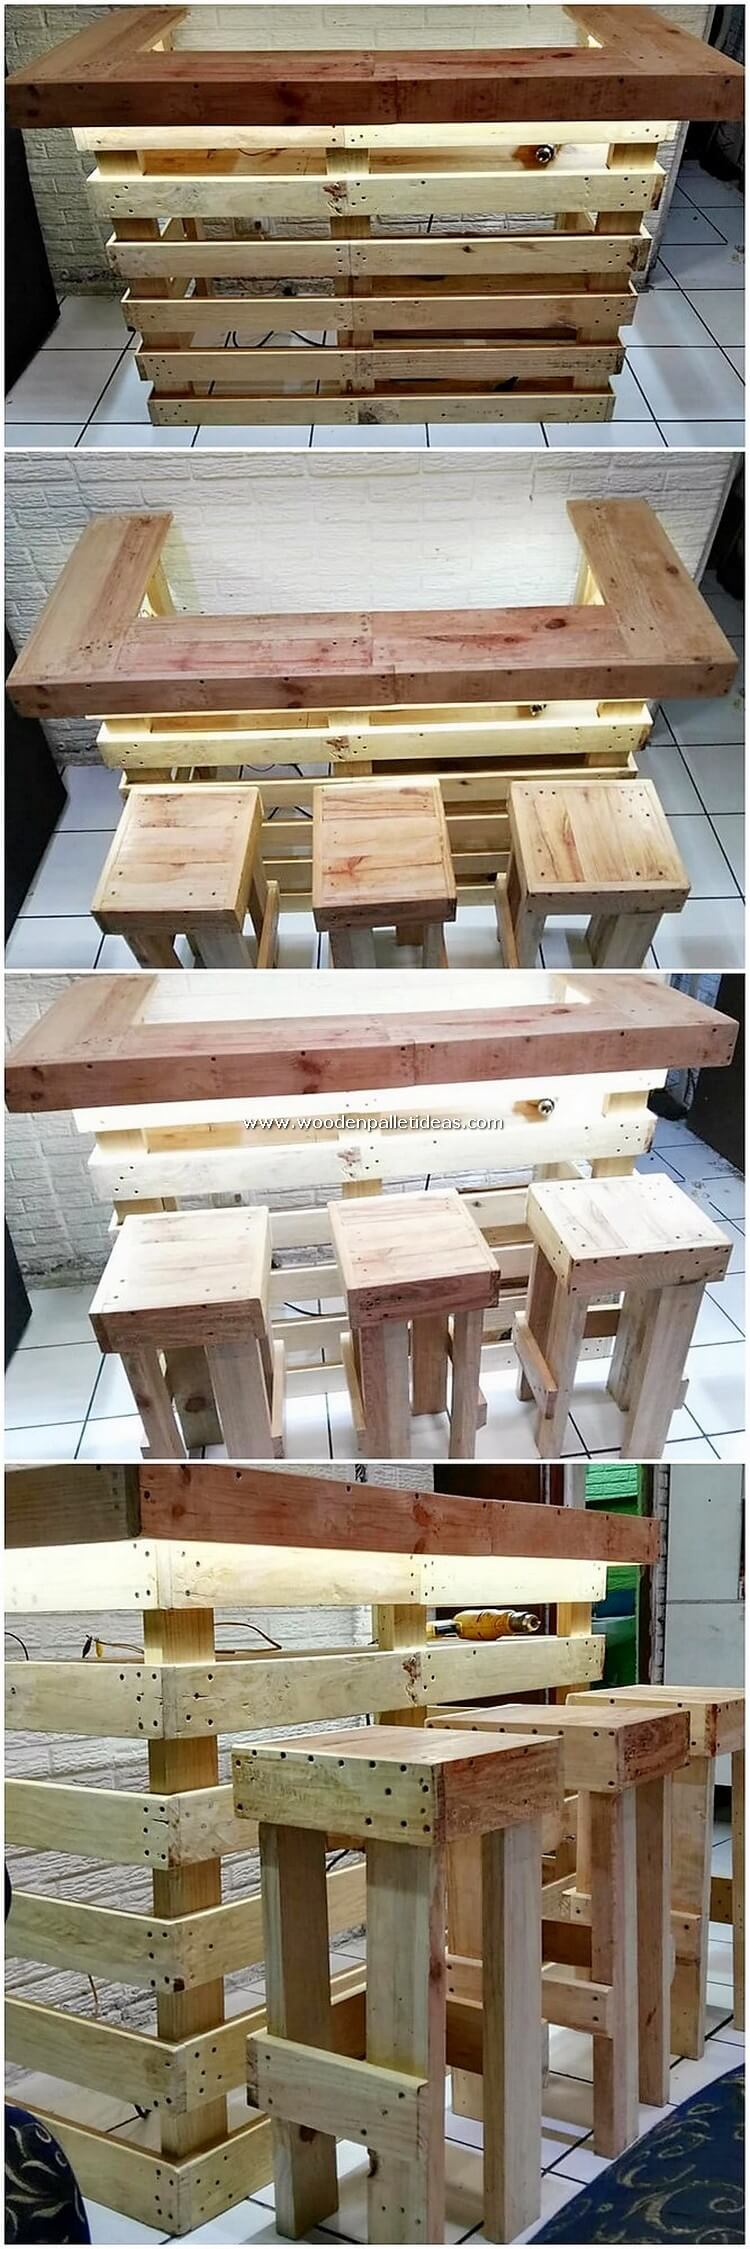 Pallet-Bar-with-Lights-and-Stools